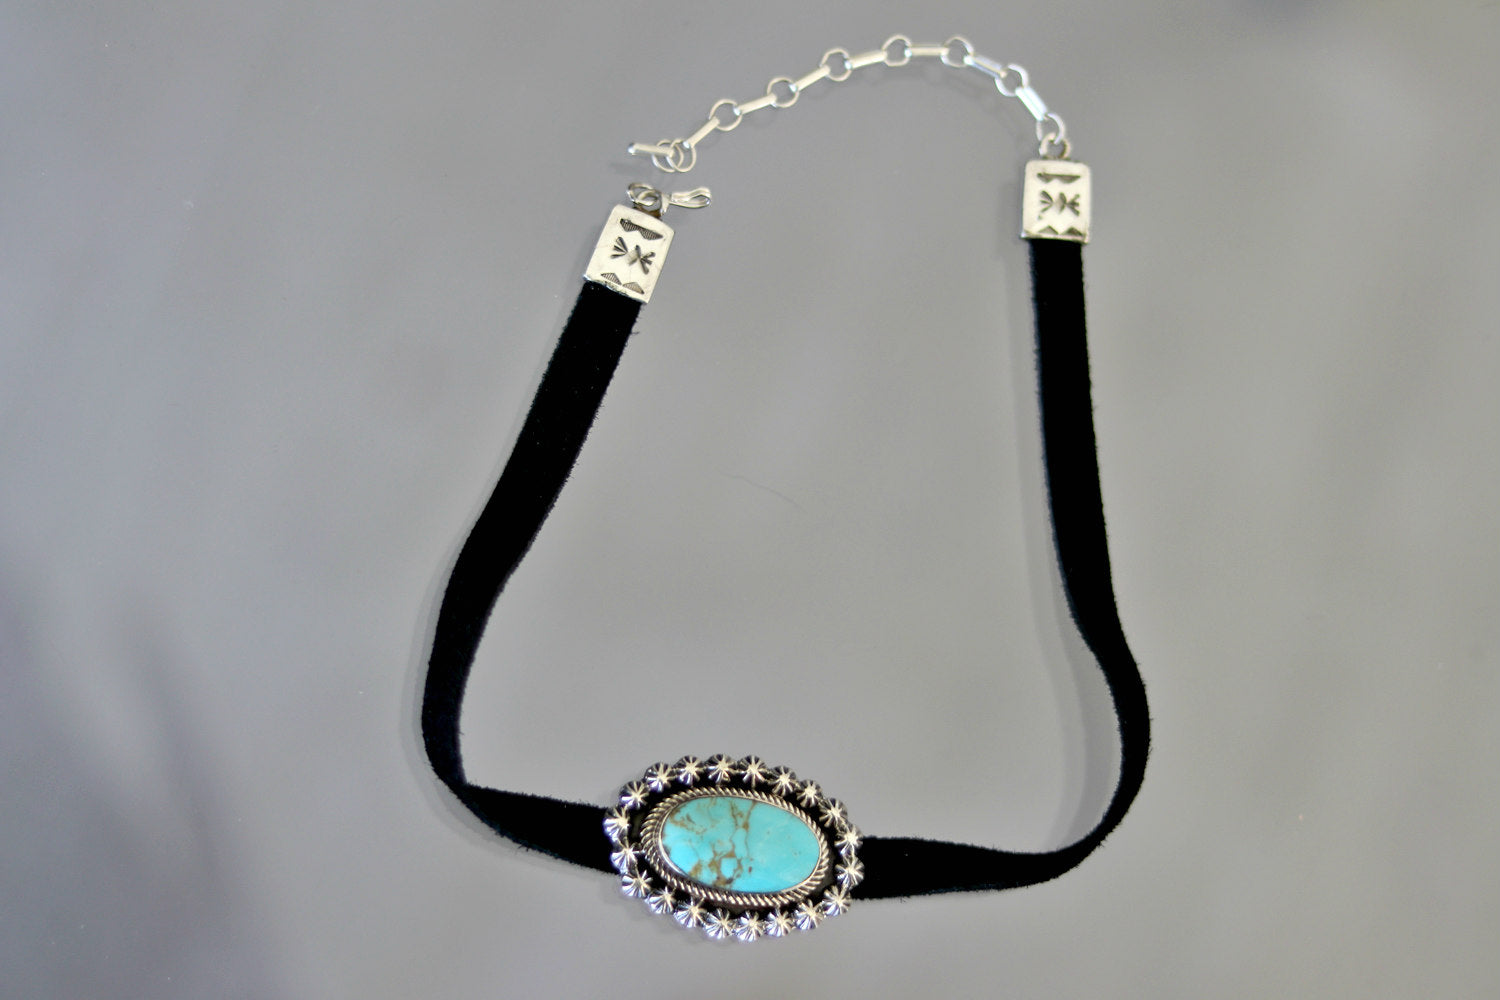 Native American Kingman Turquoise Sterling Silver Choker Necklace